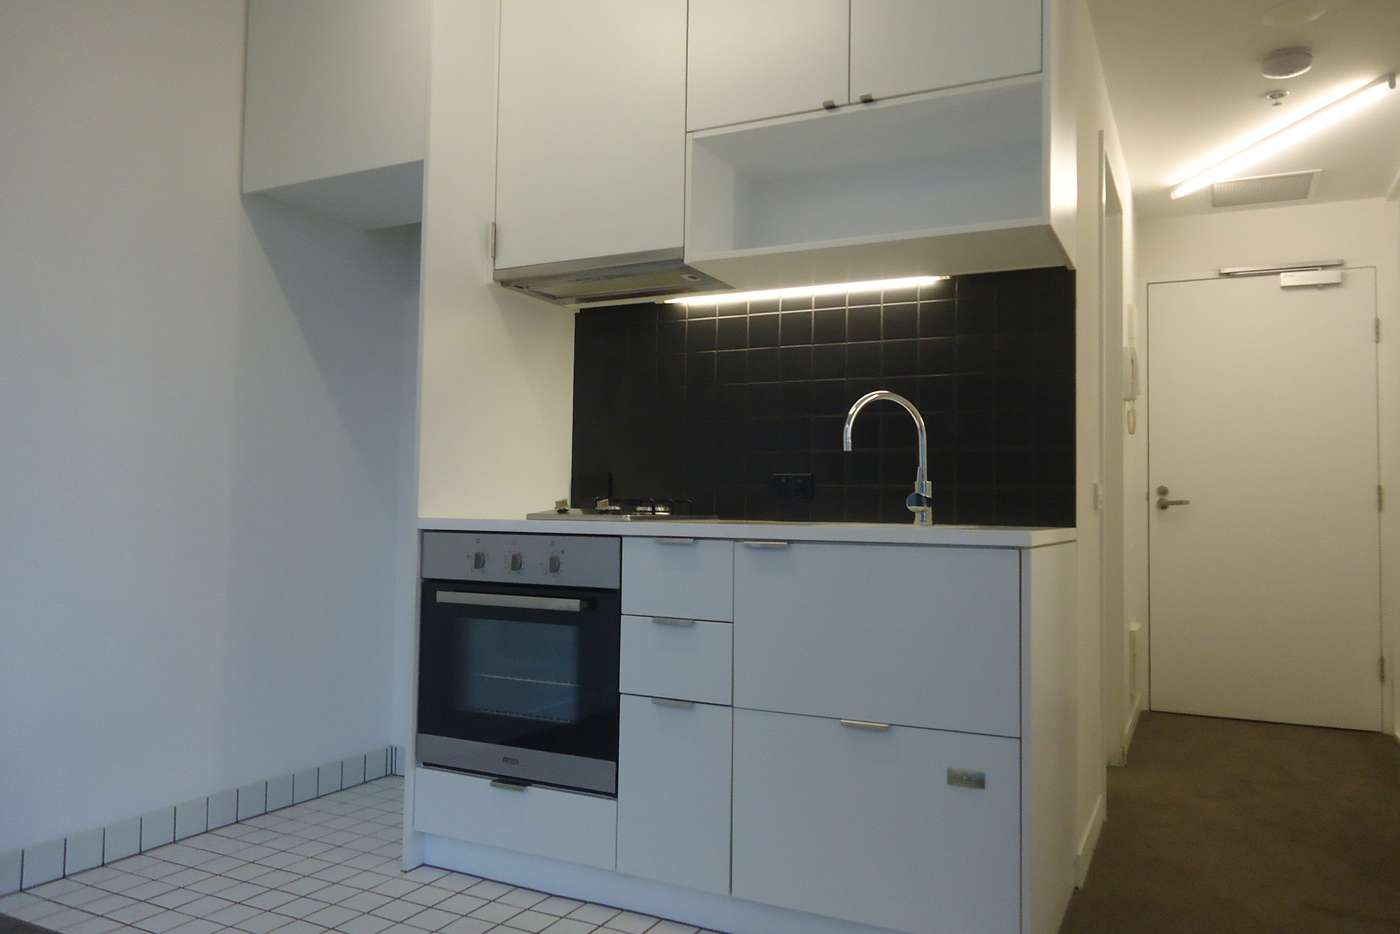 Main view of Homely apartment listing, 1105/31 A'Beckett Street, Melbourne VIC 3000